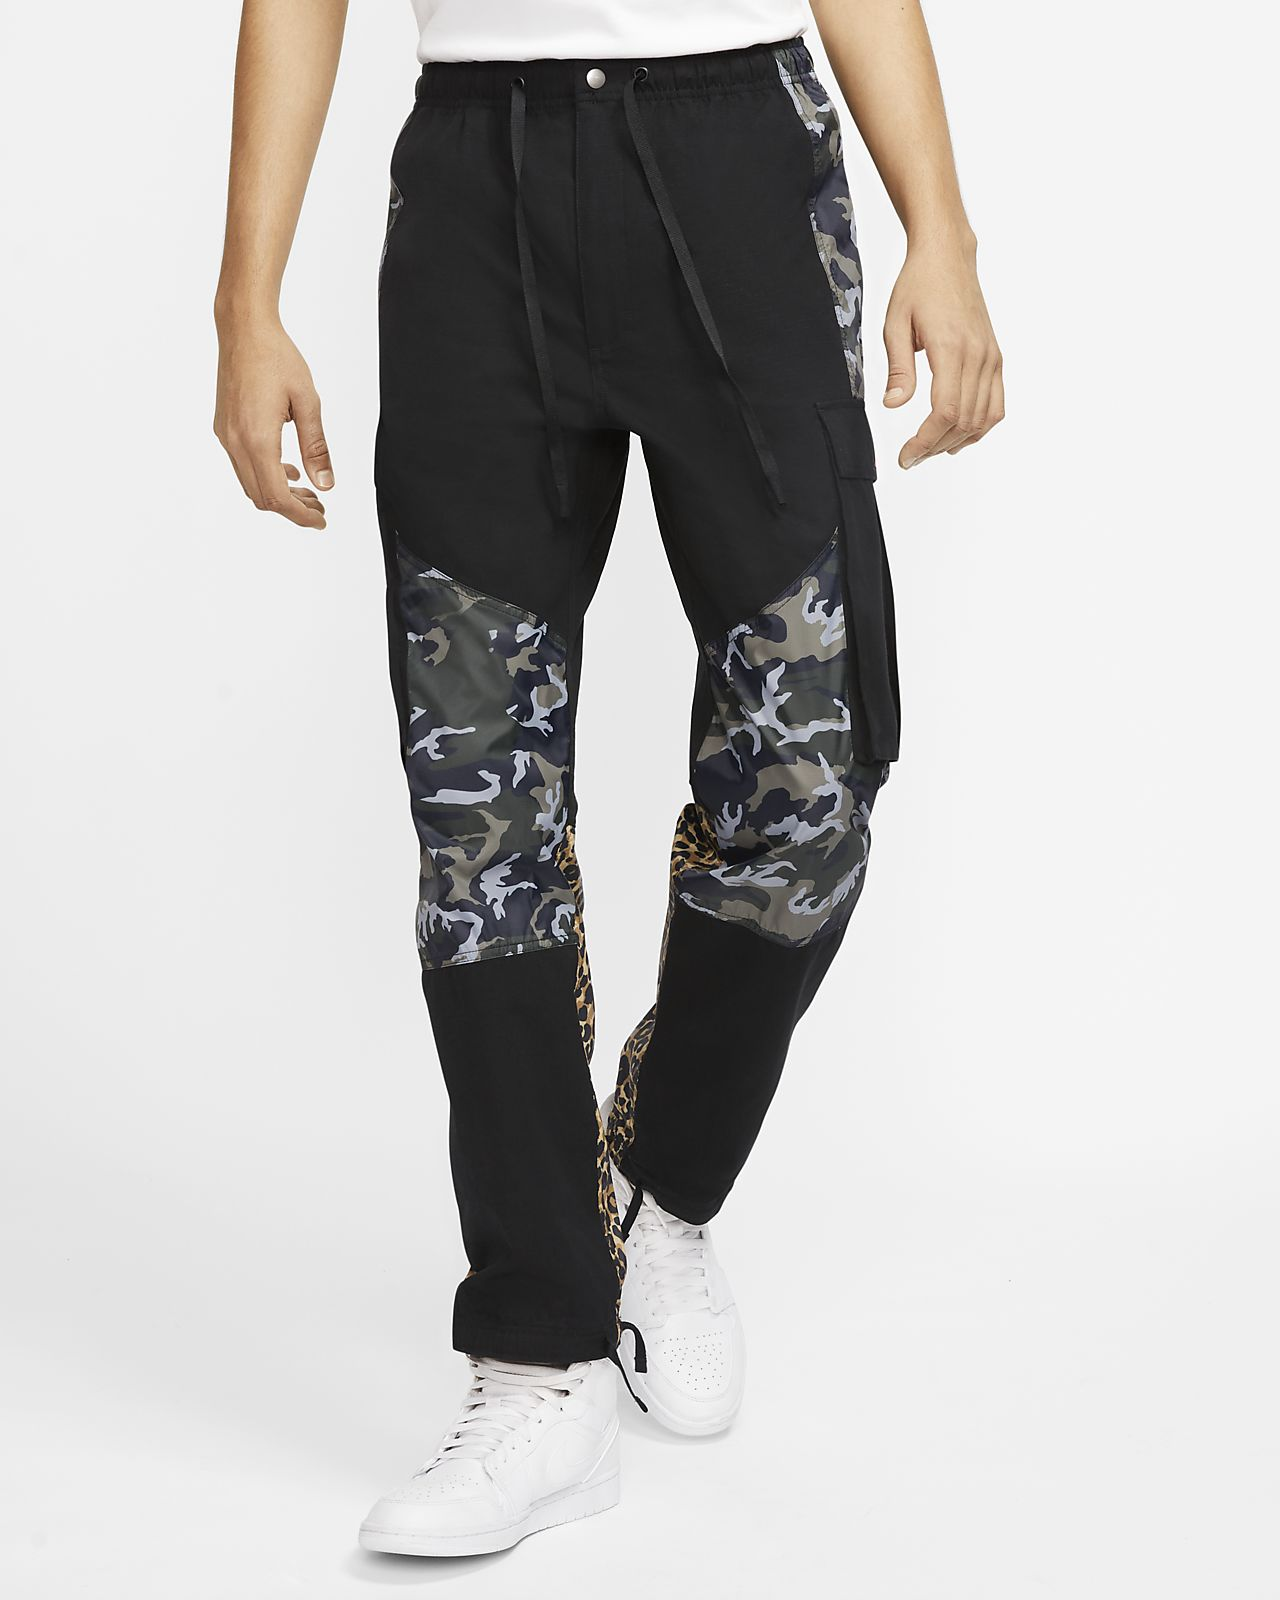 Jordan Animal Instinct Men's Trousers